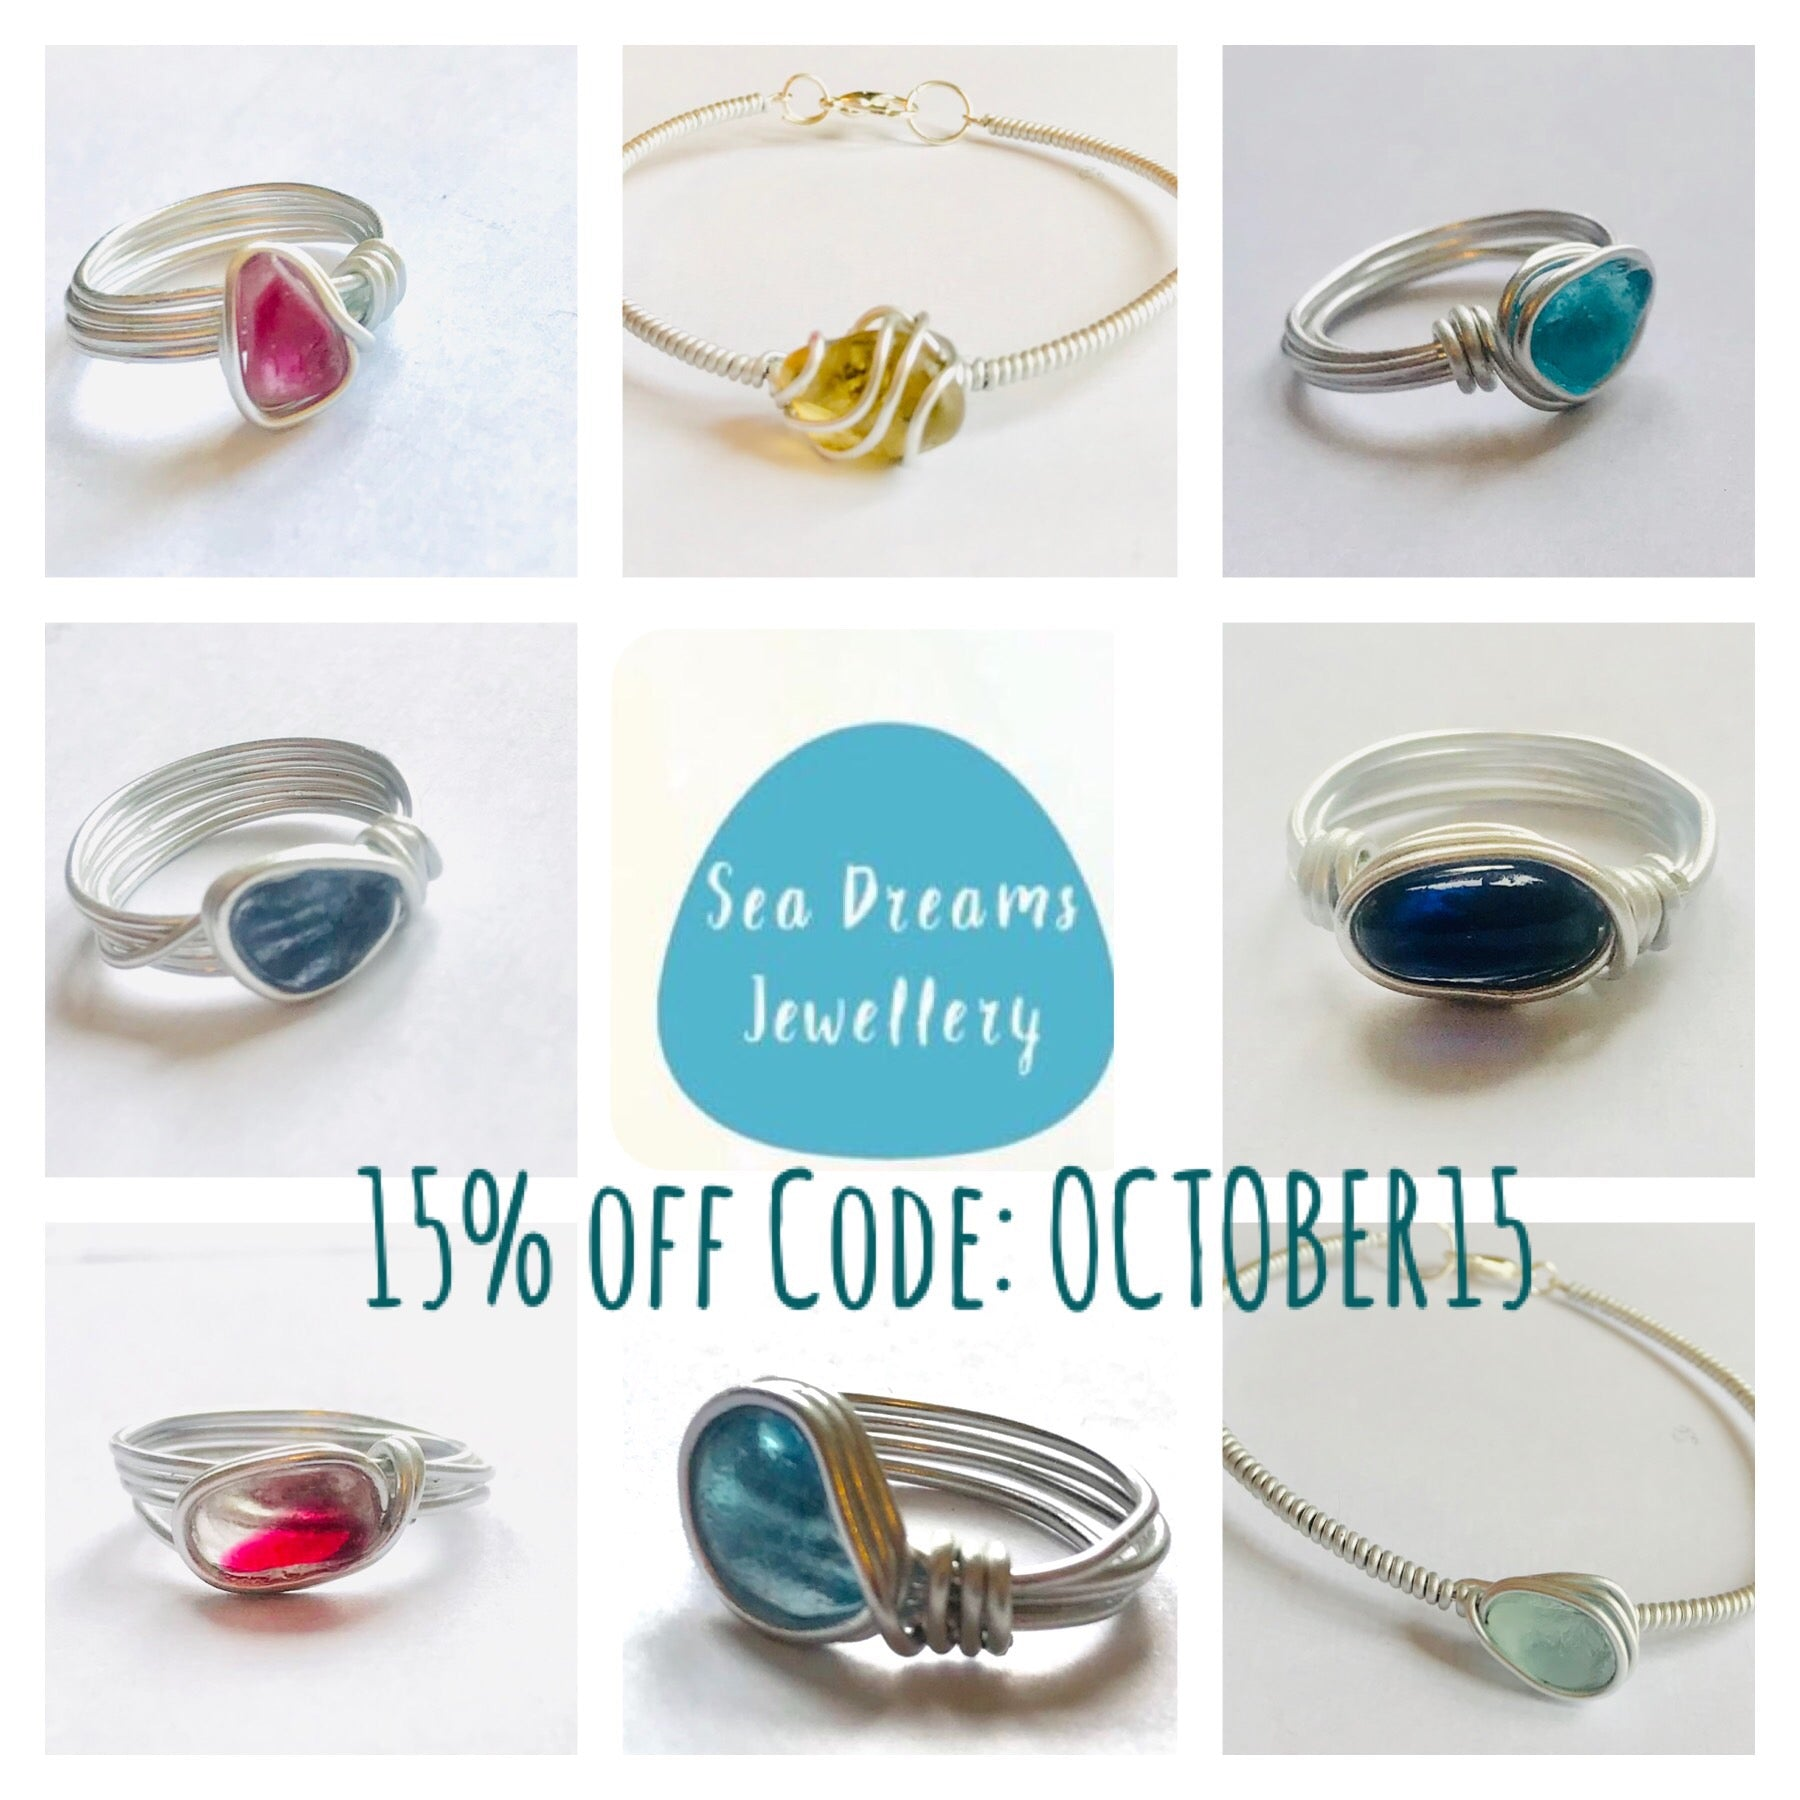 15% off in October Code: OCTOBER15